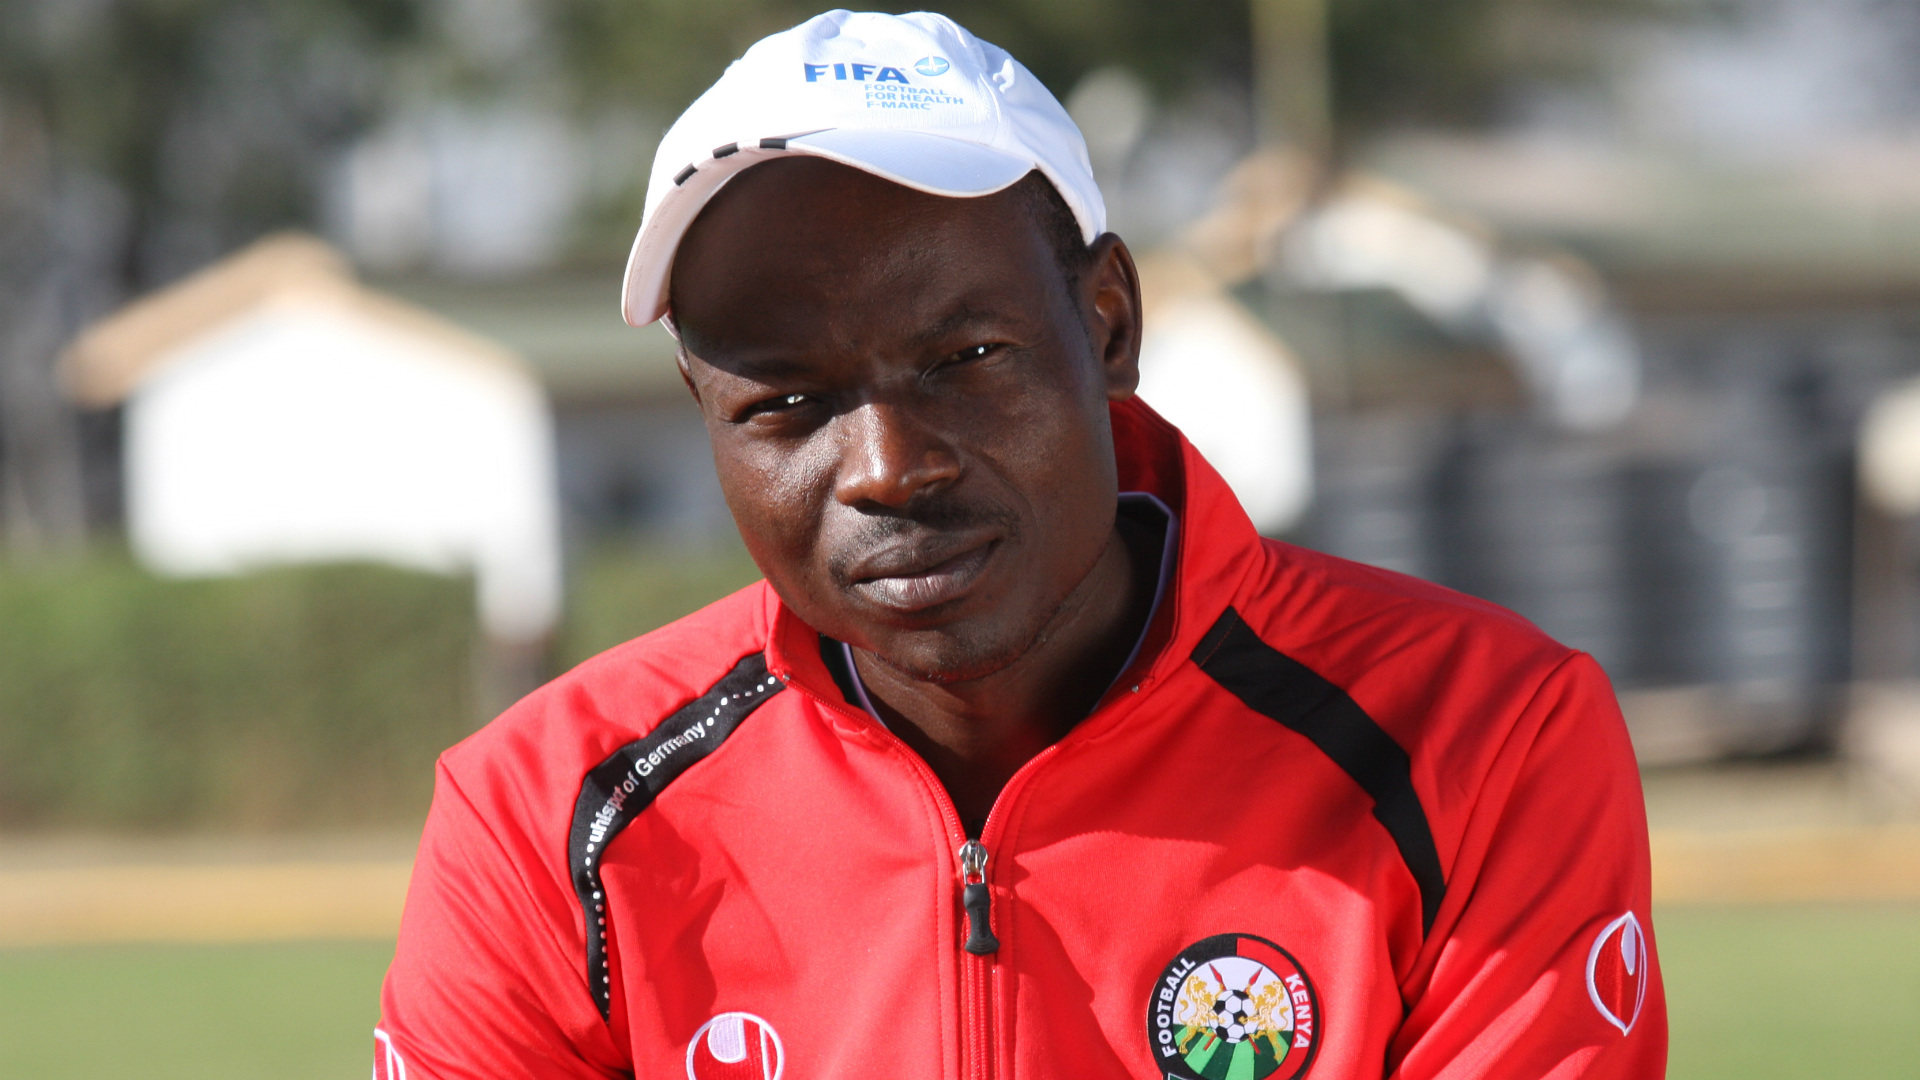 Rising Stars will have no excuse at Cecafa U20 - Okumbi